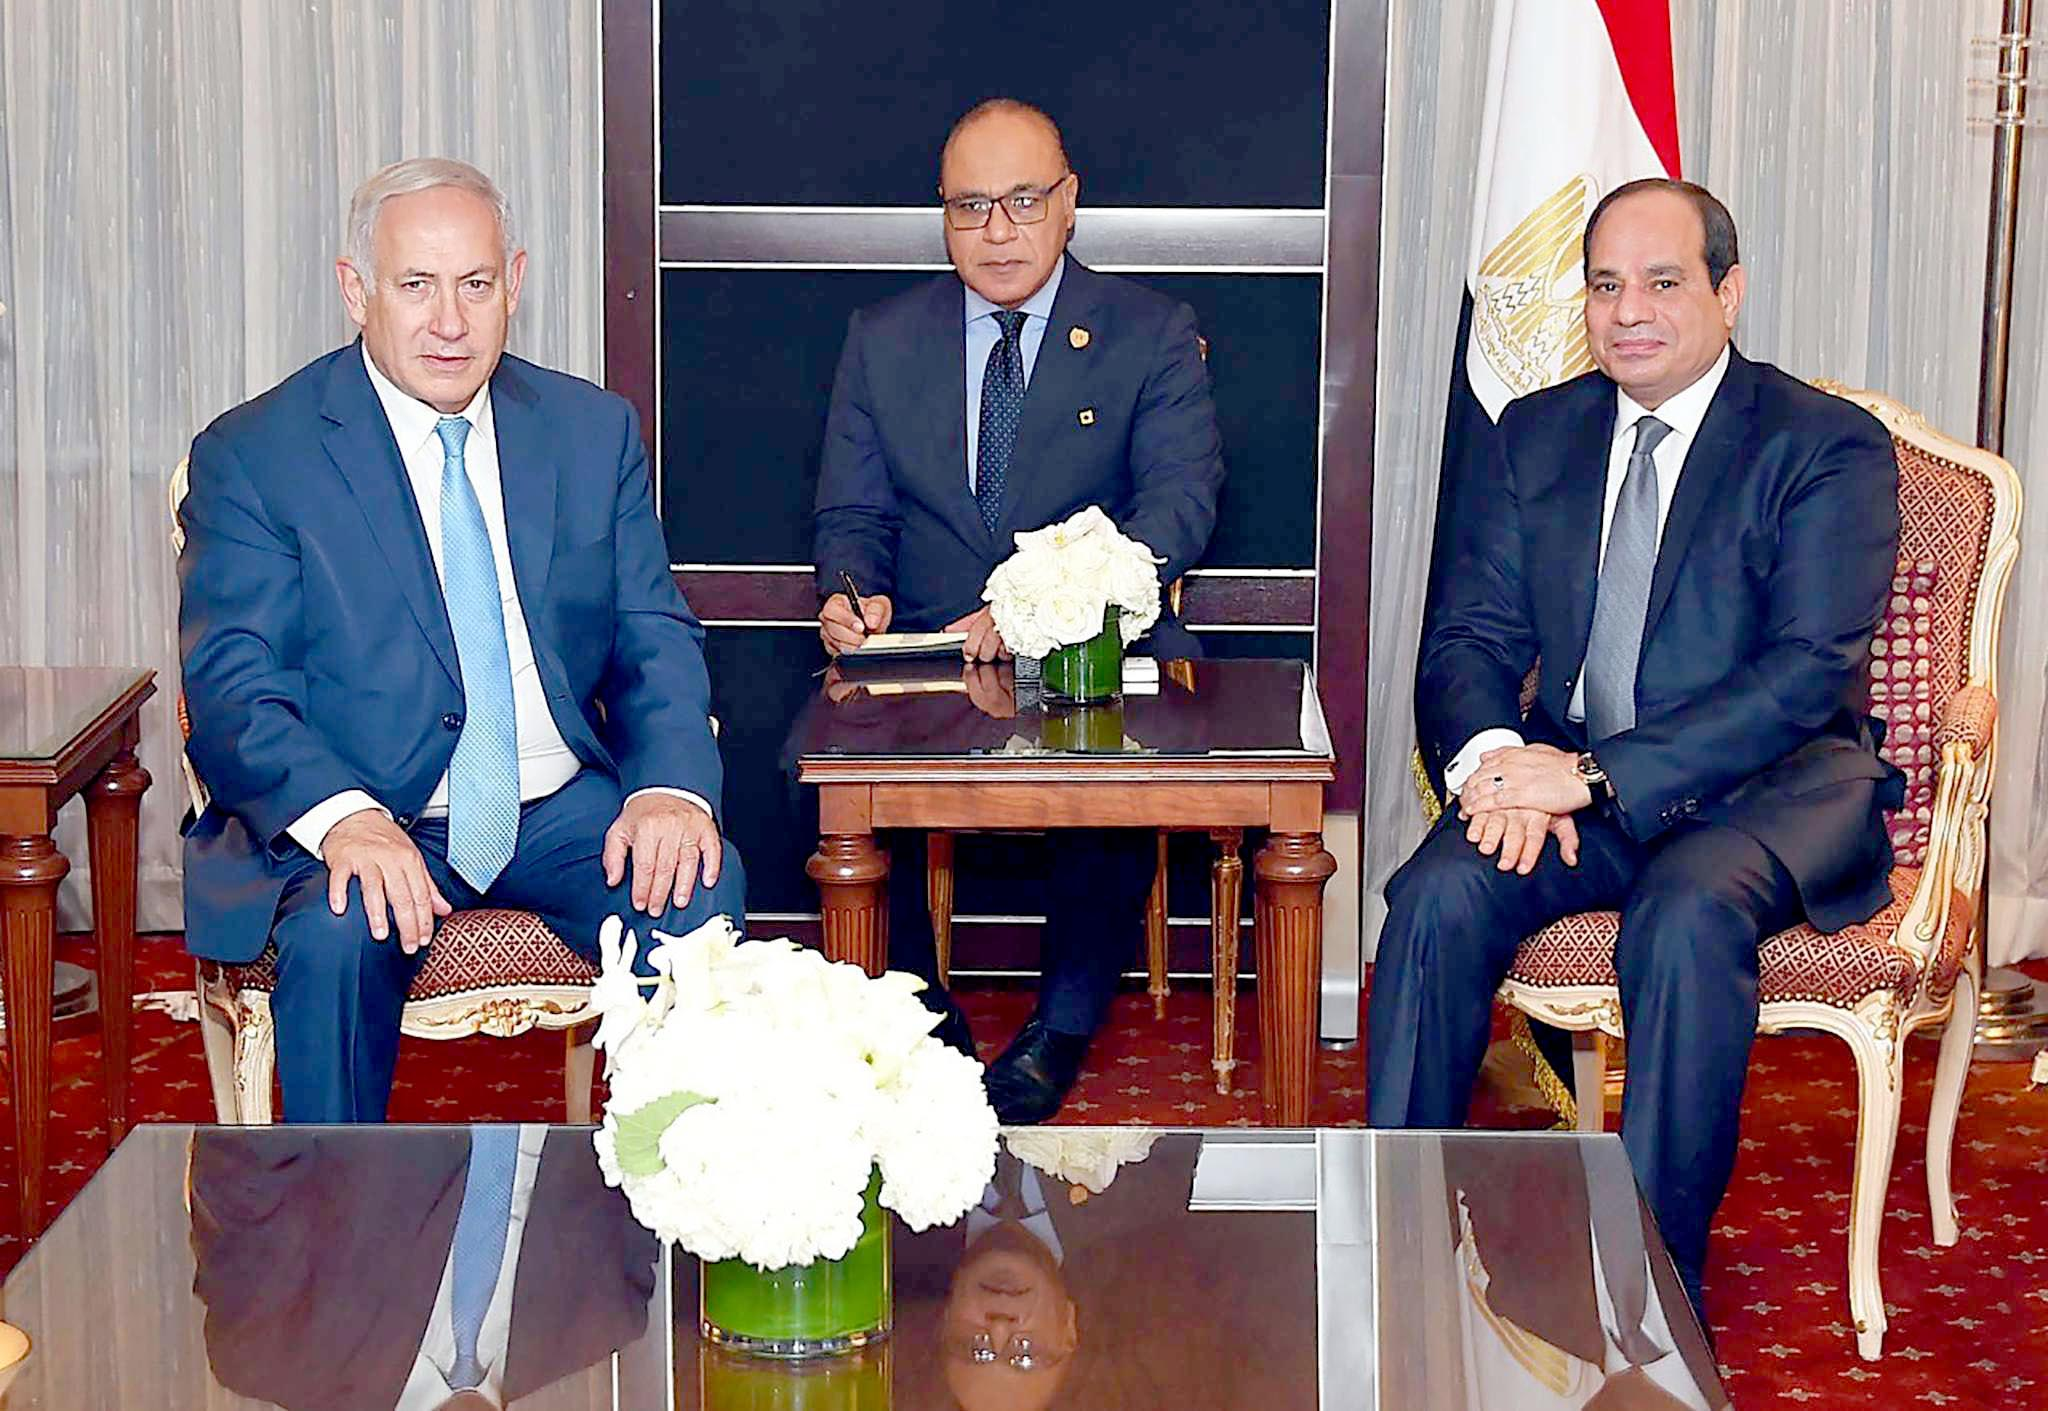 Egyptian President Abdel Fattah al-Sisi (R) meets with Israeli Prime Minister Binyamin Netanyahu (L) at the UN General Assembly, on September 27. (AFP)